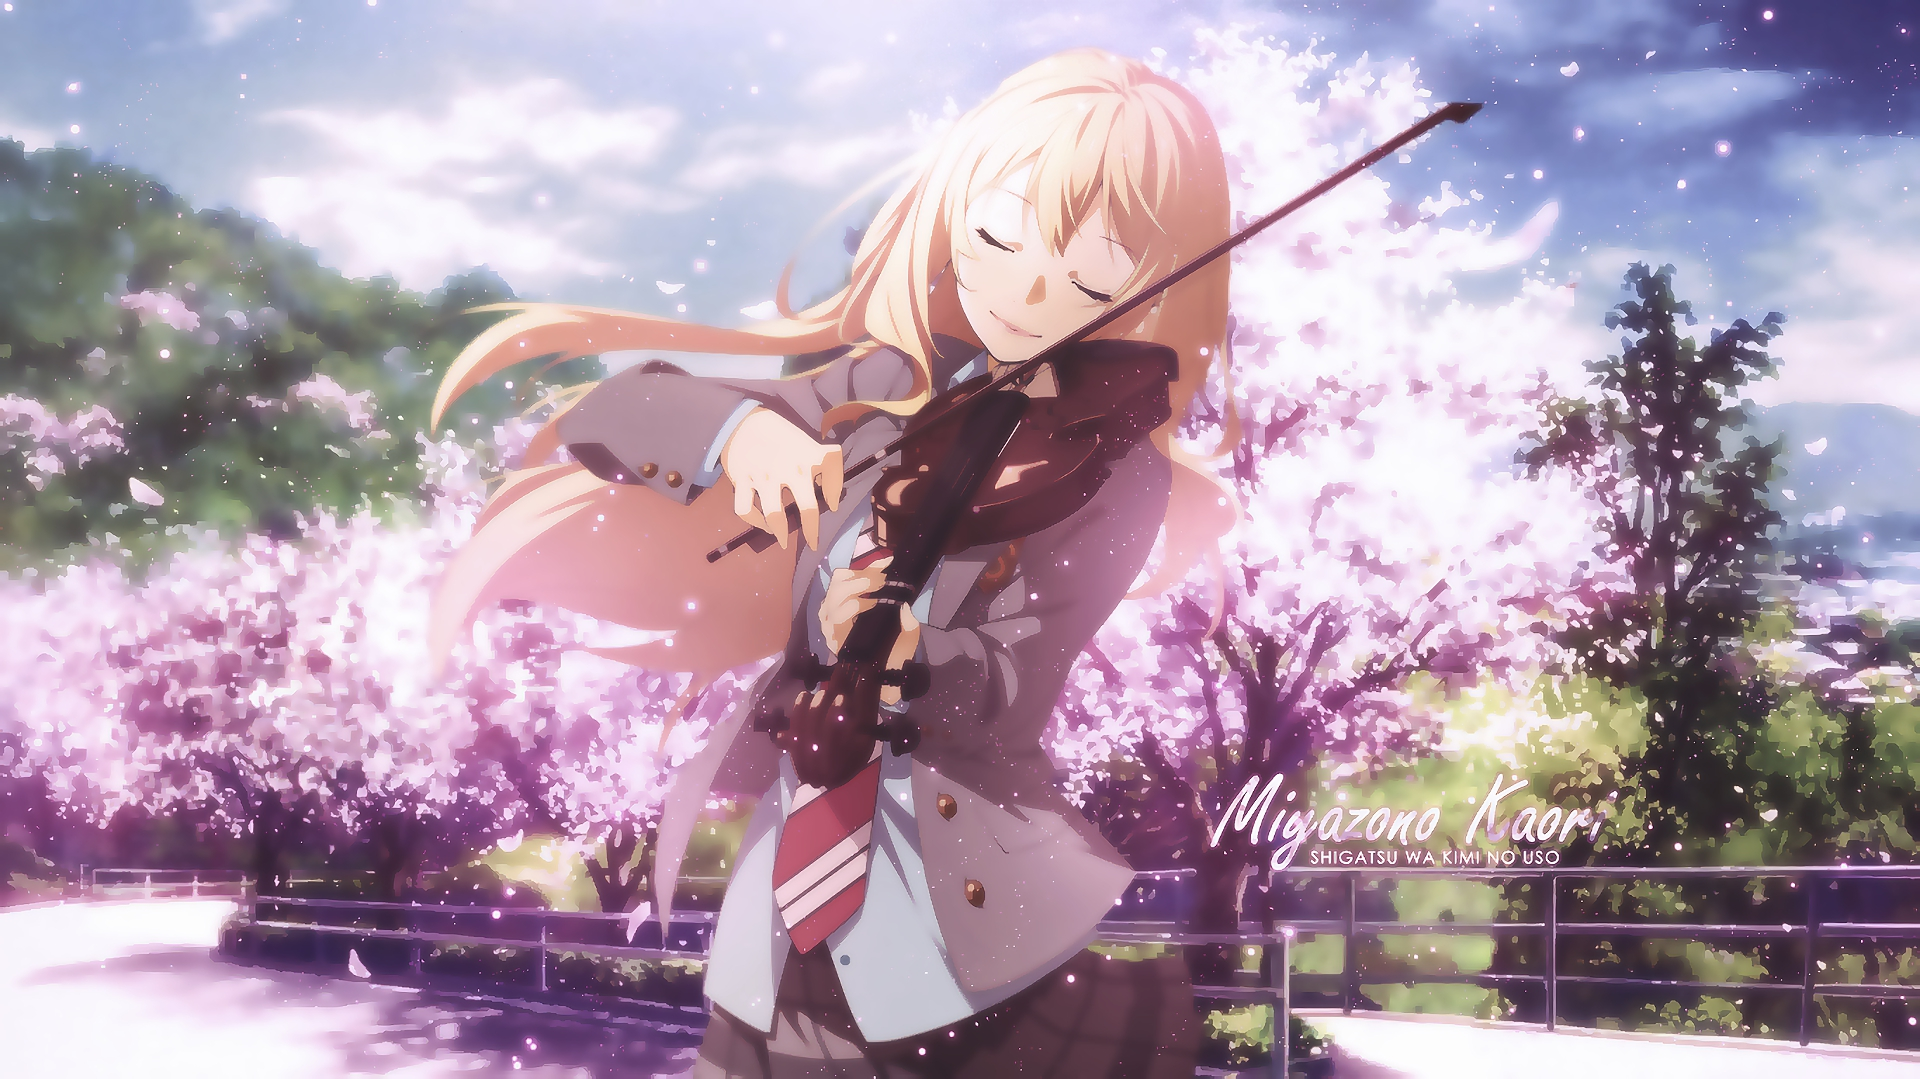 Your Lie In April Hd Wallpaper: Your Lie In April Wallpaper And Background Image